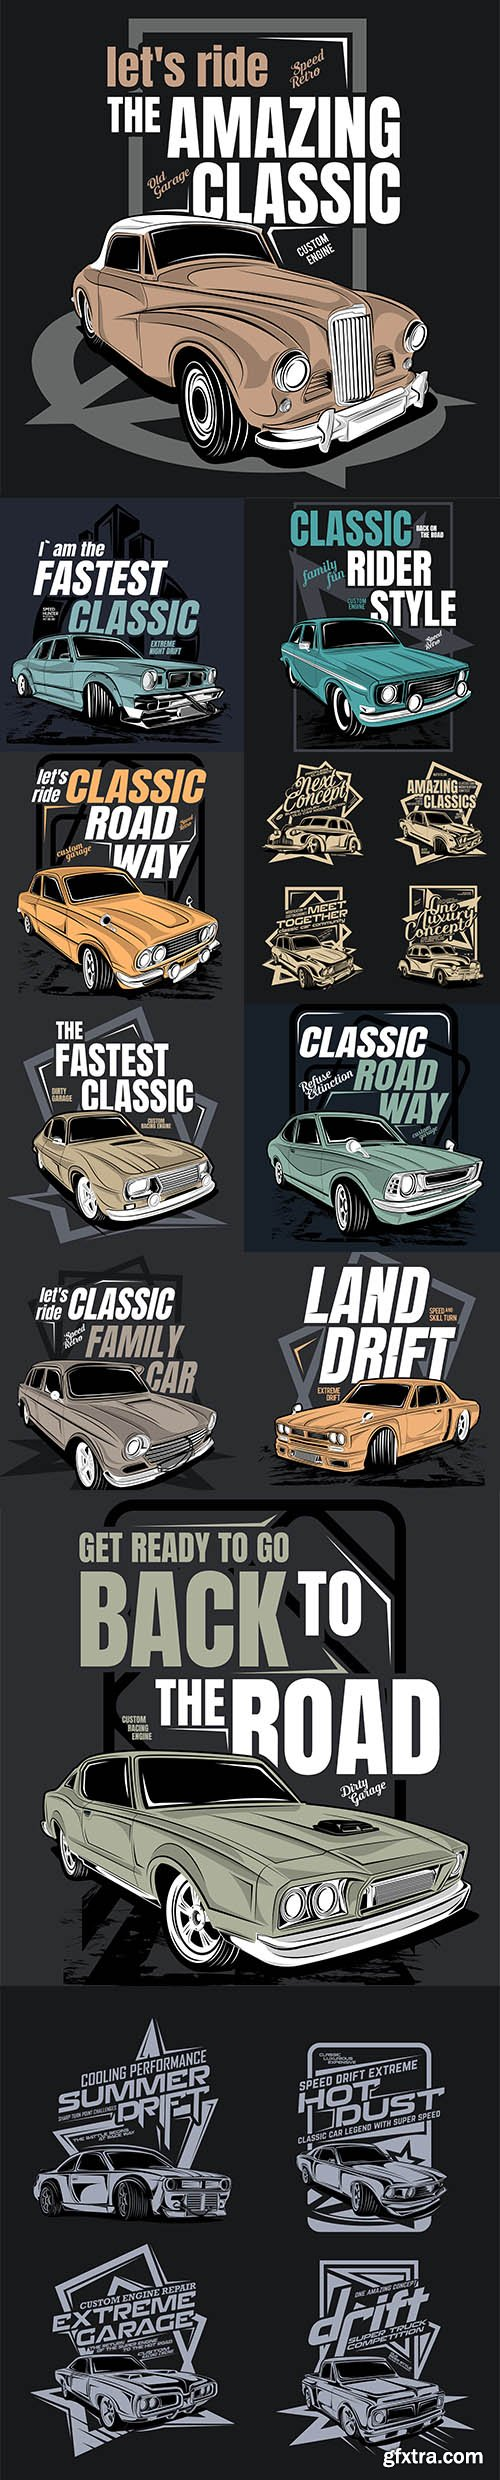 Vintage Illustration with Classic Car